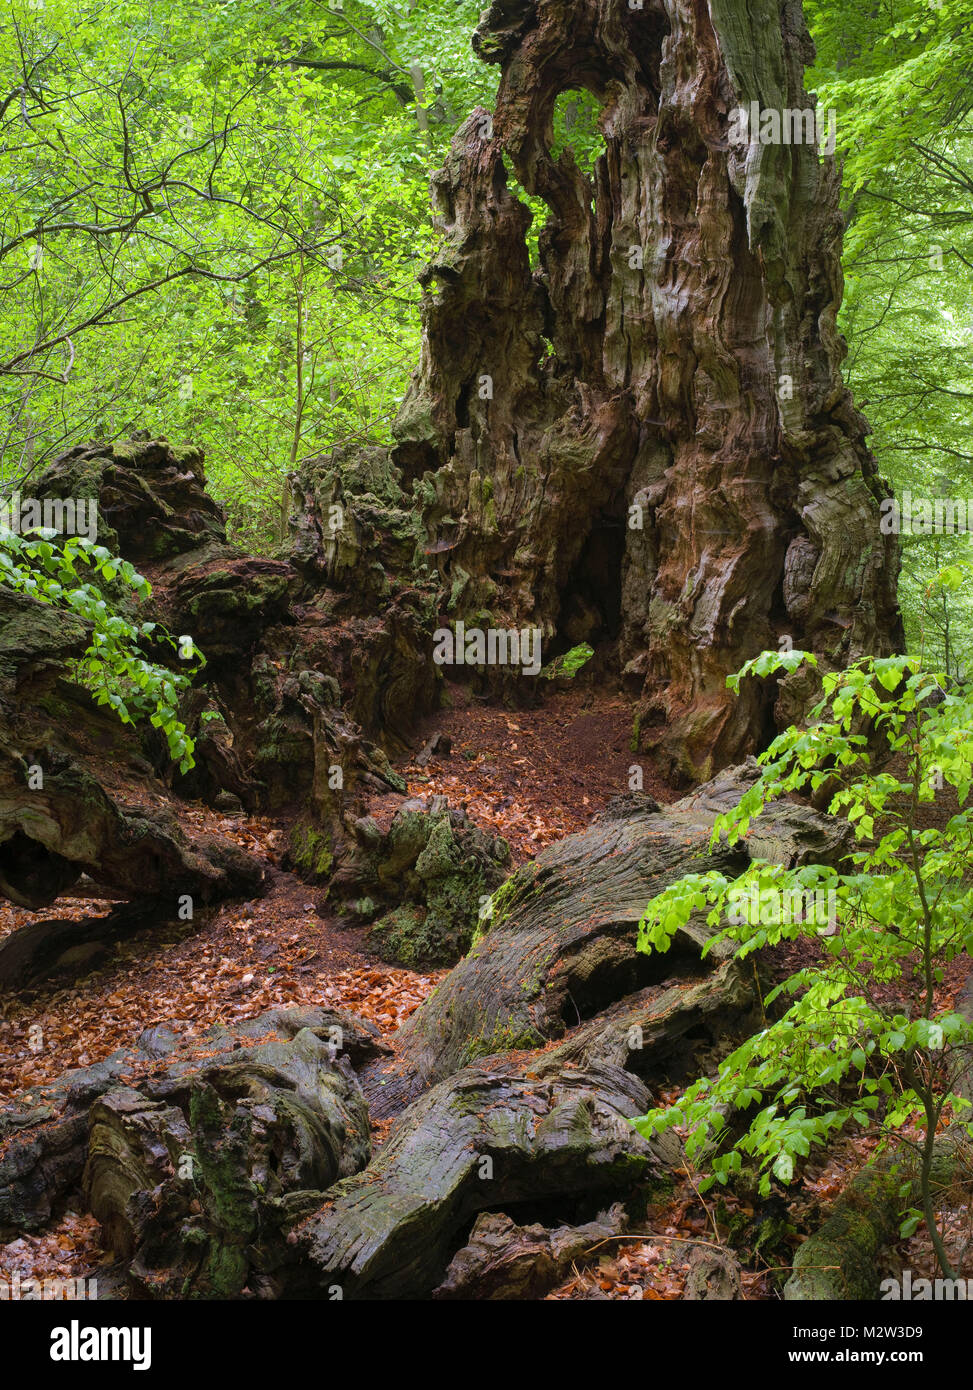 Old trunk of a beech in the Urwald Sababurg, Reinhardswald, Hessia, Germany - Stock Image